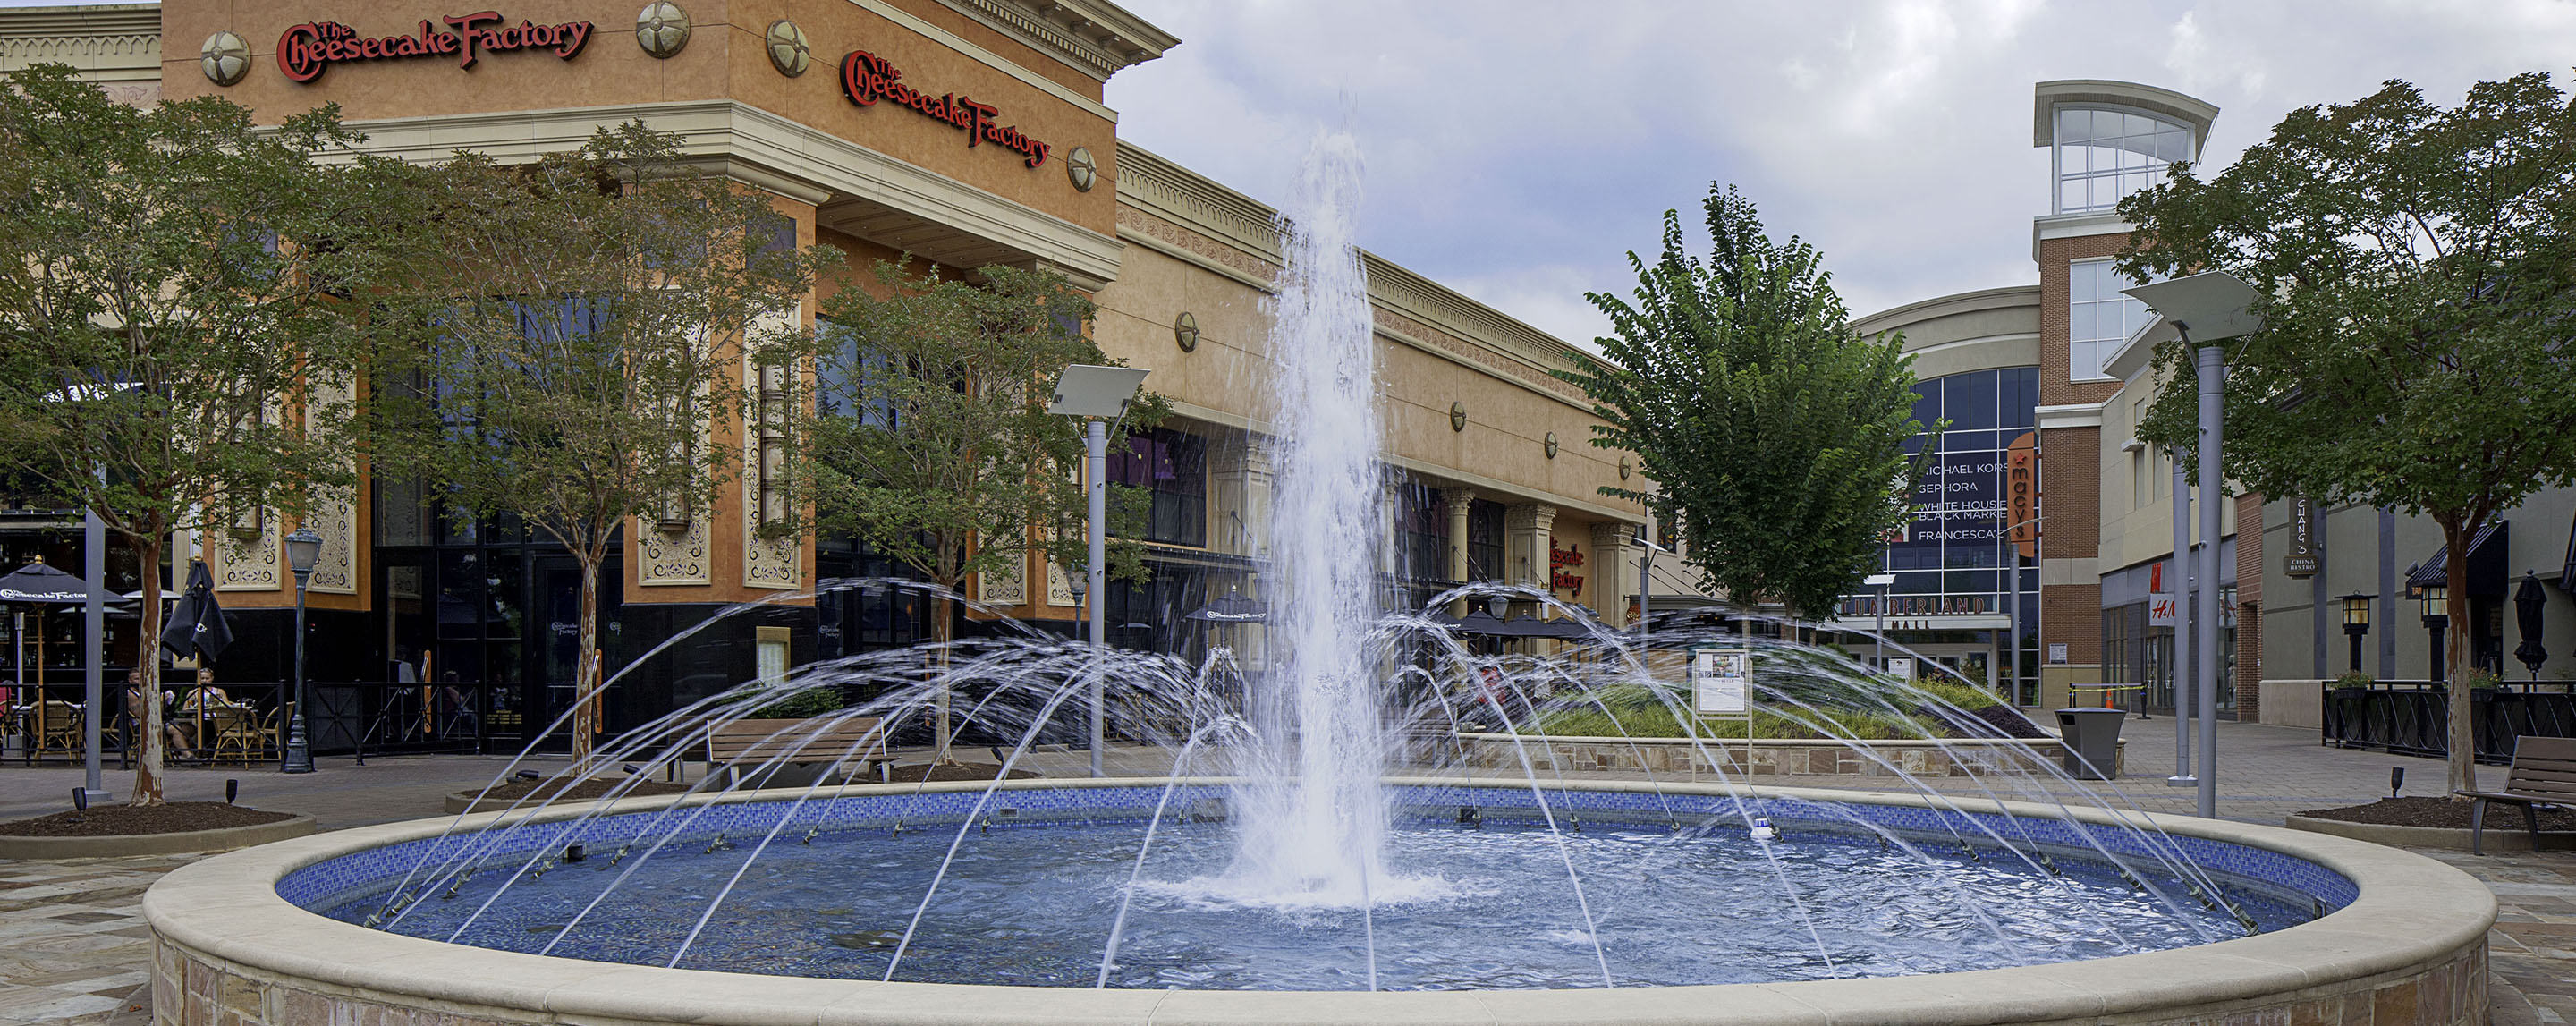 A large fountain is in the common entrance area of Cumberland Mall along with dining options and benches for seating.